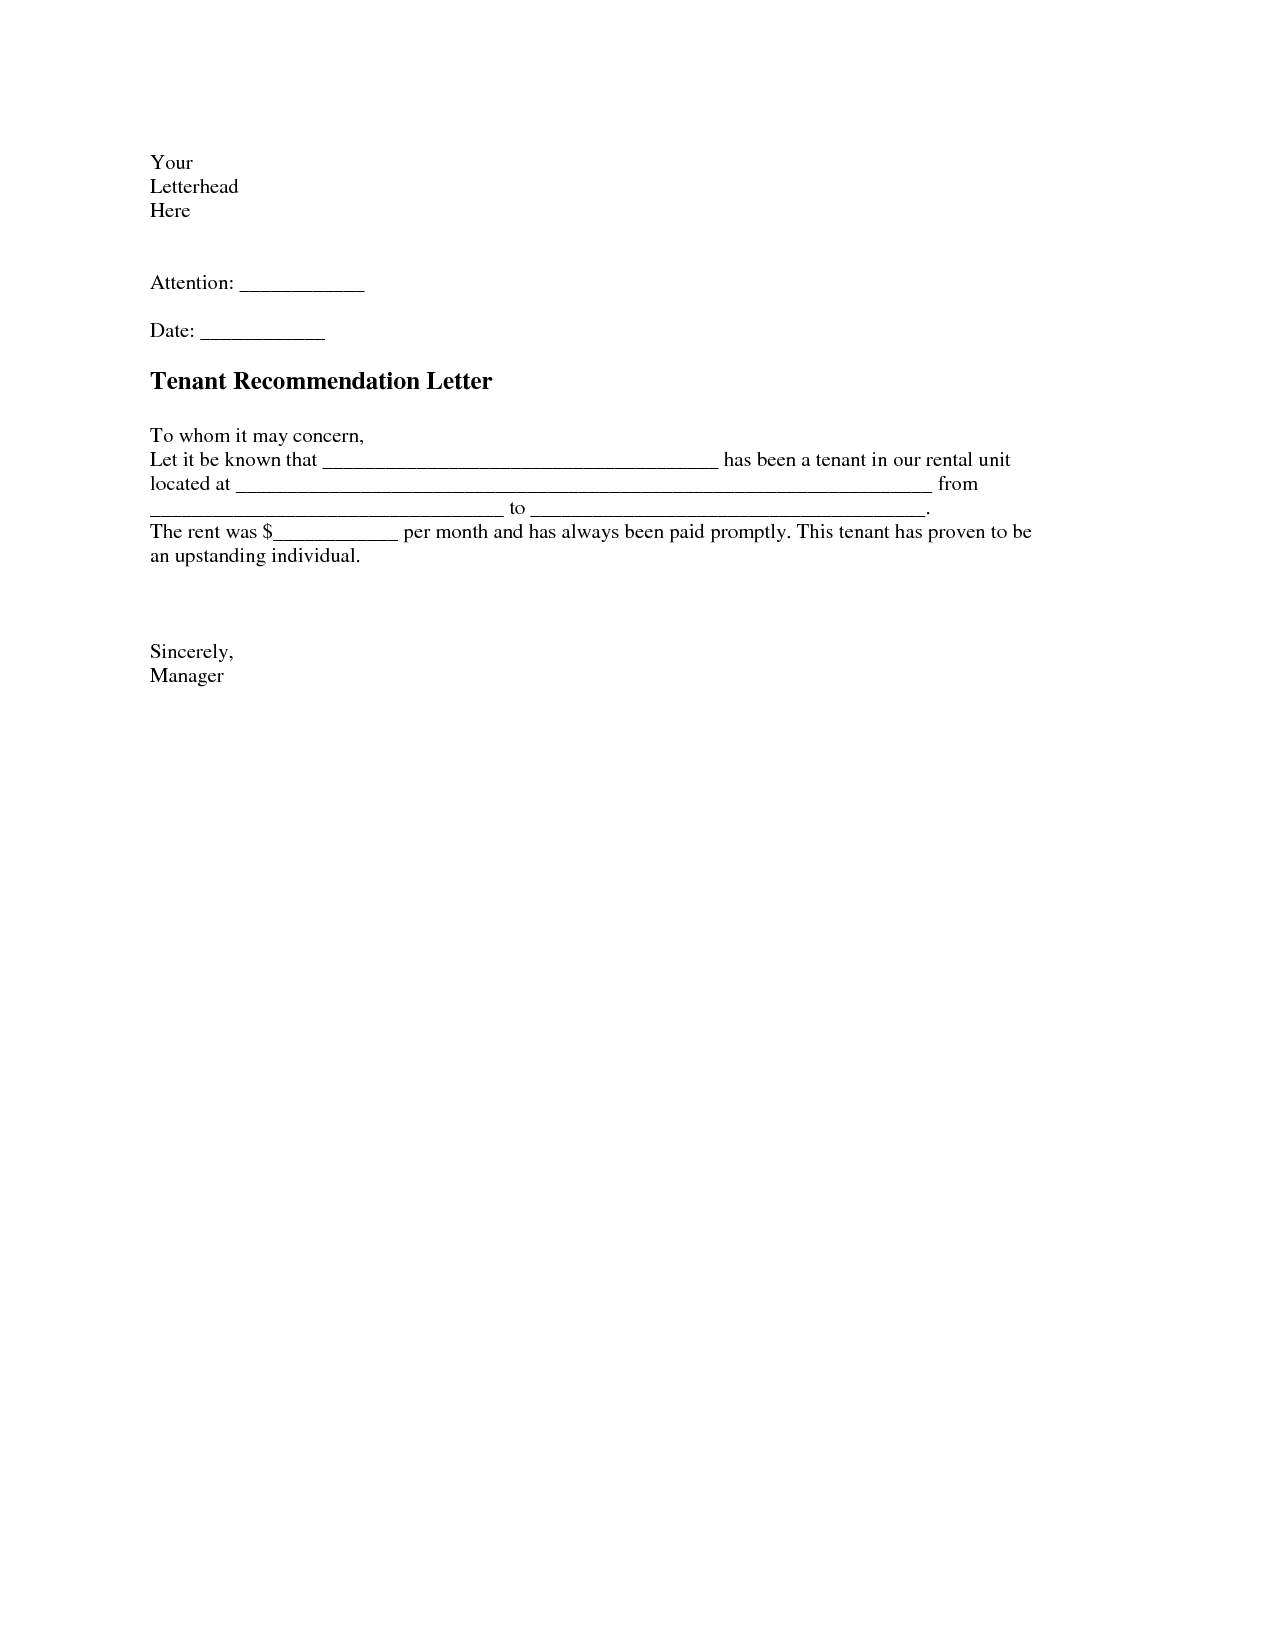 Landlord Notice Letter to Tenant Template - Tenant Re Mendation Letter A Tenant Re Mendation Letter is